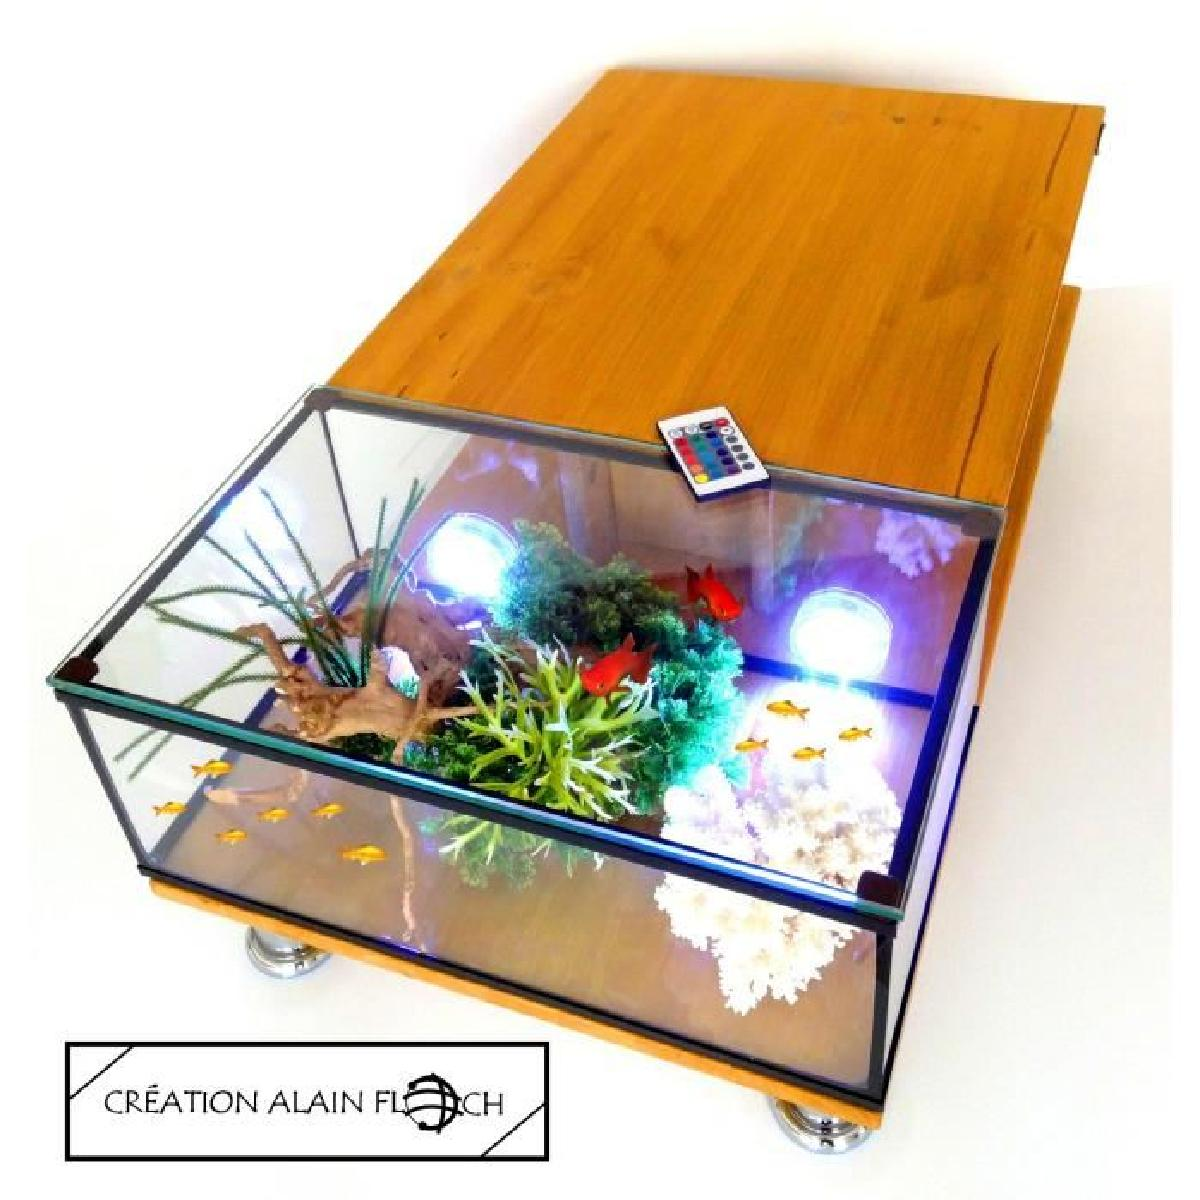 Site table basse aquarium mobilier design d coration d 39 int rieur - Table basse aquarium design ...